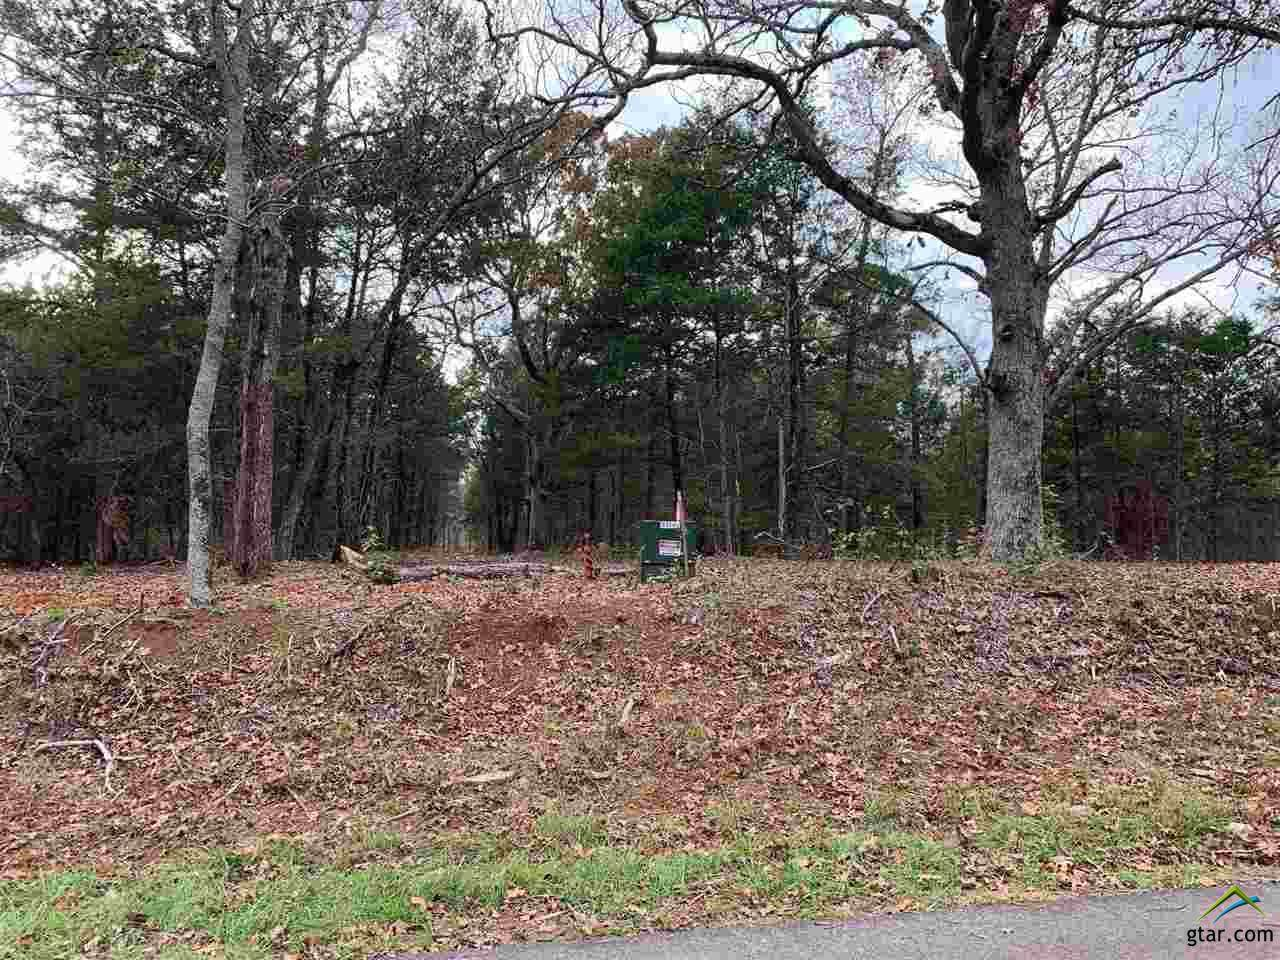 https://bt-photos.global.ssl.fastly.net/tyler/orig_boomver_3_10128933-2.jpg